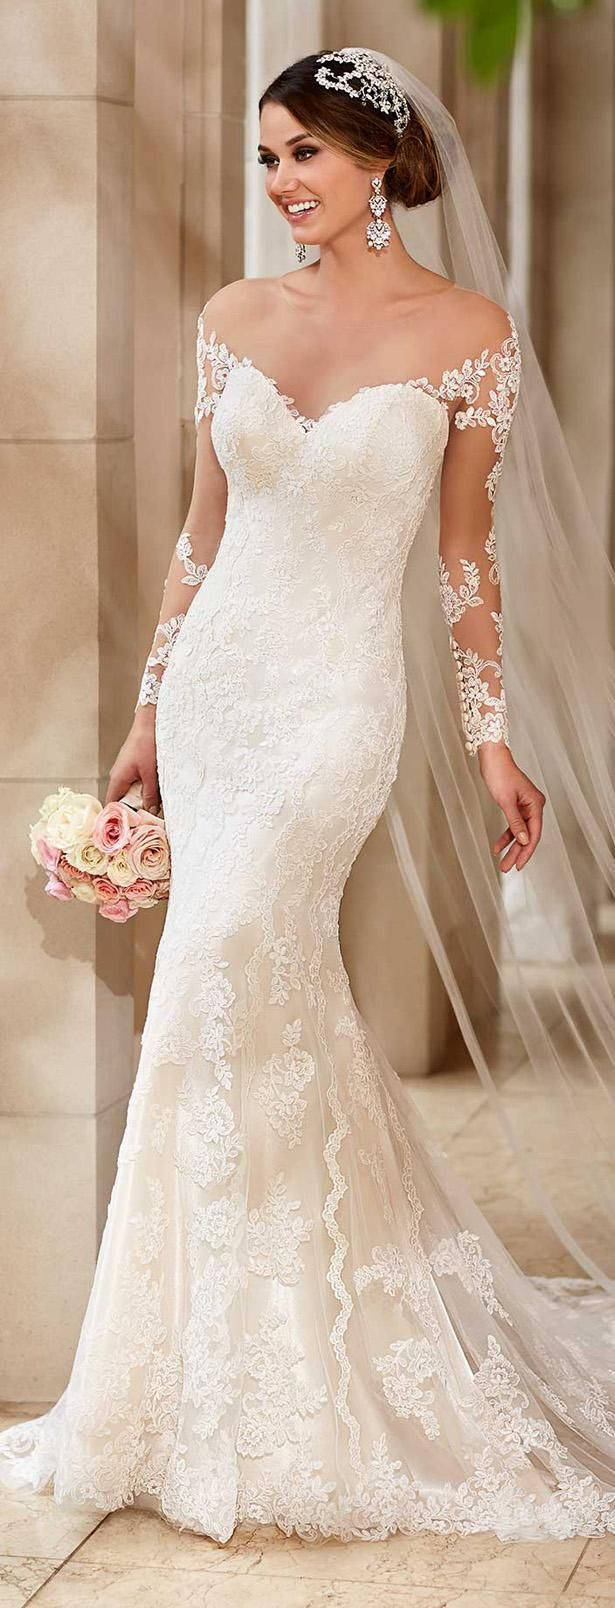 The new hot fishtail wedding dress 2016 sexy small sleeved